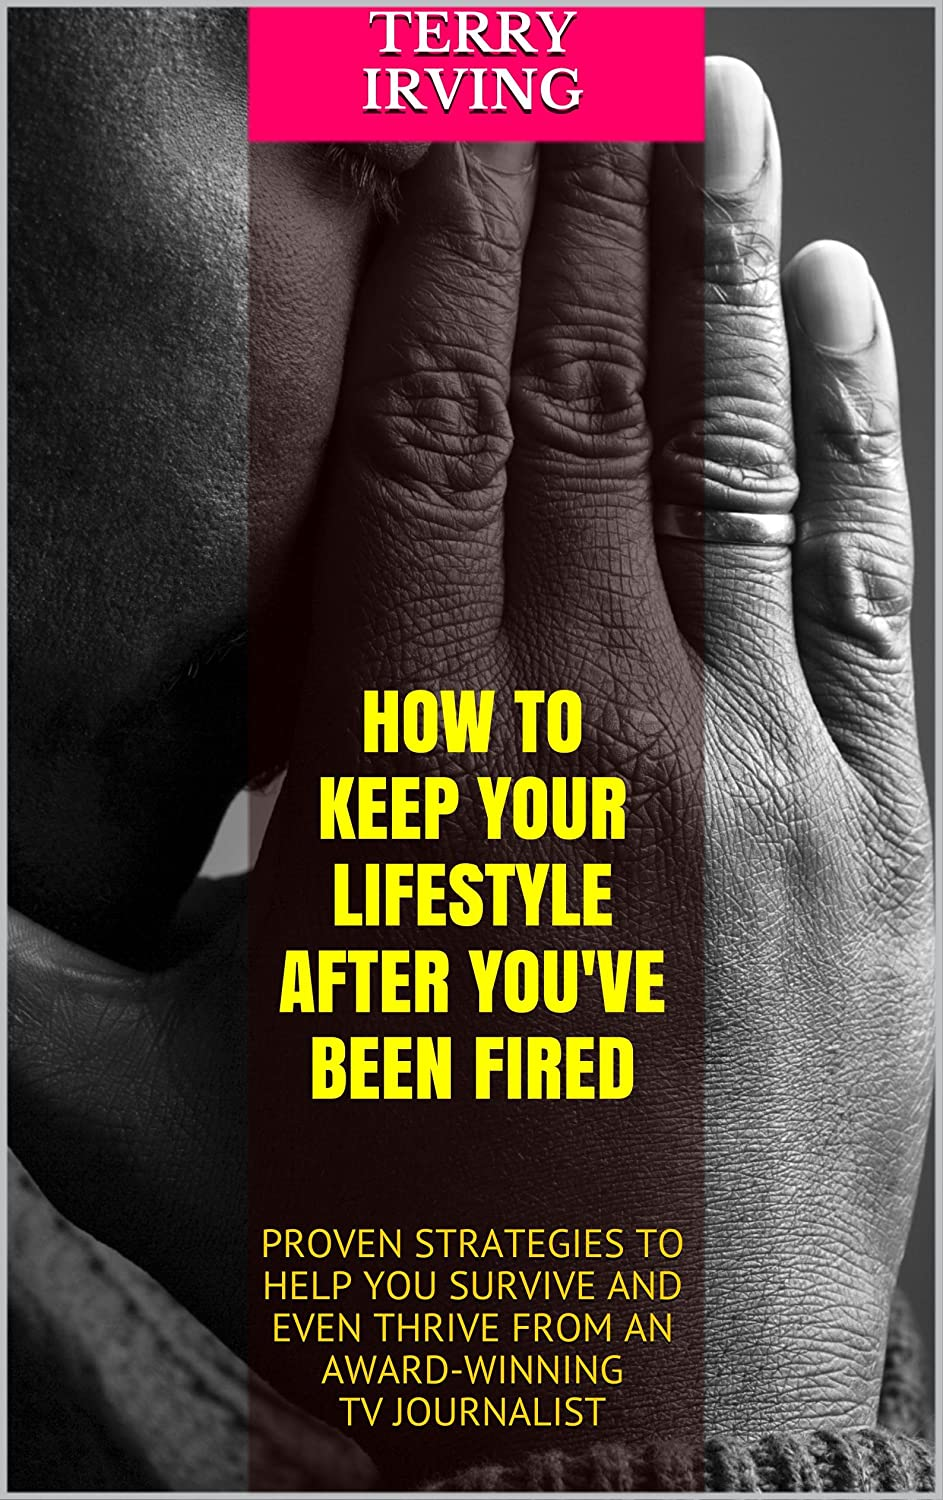 this book is written for you the middle class worker who thought this would never happen who believed you were invulnerable destined for a great career - How To Get Hired After Being Fired Or In Downtimes